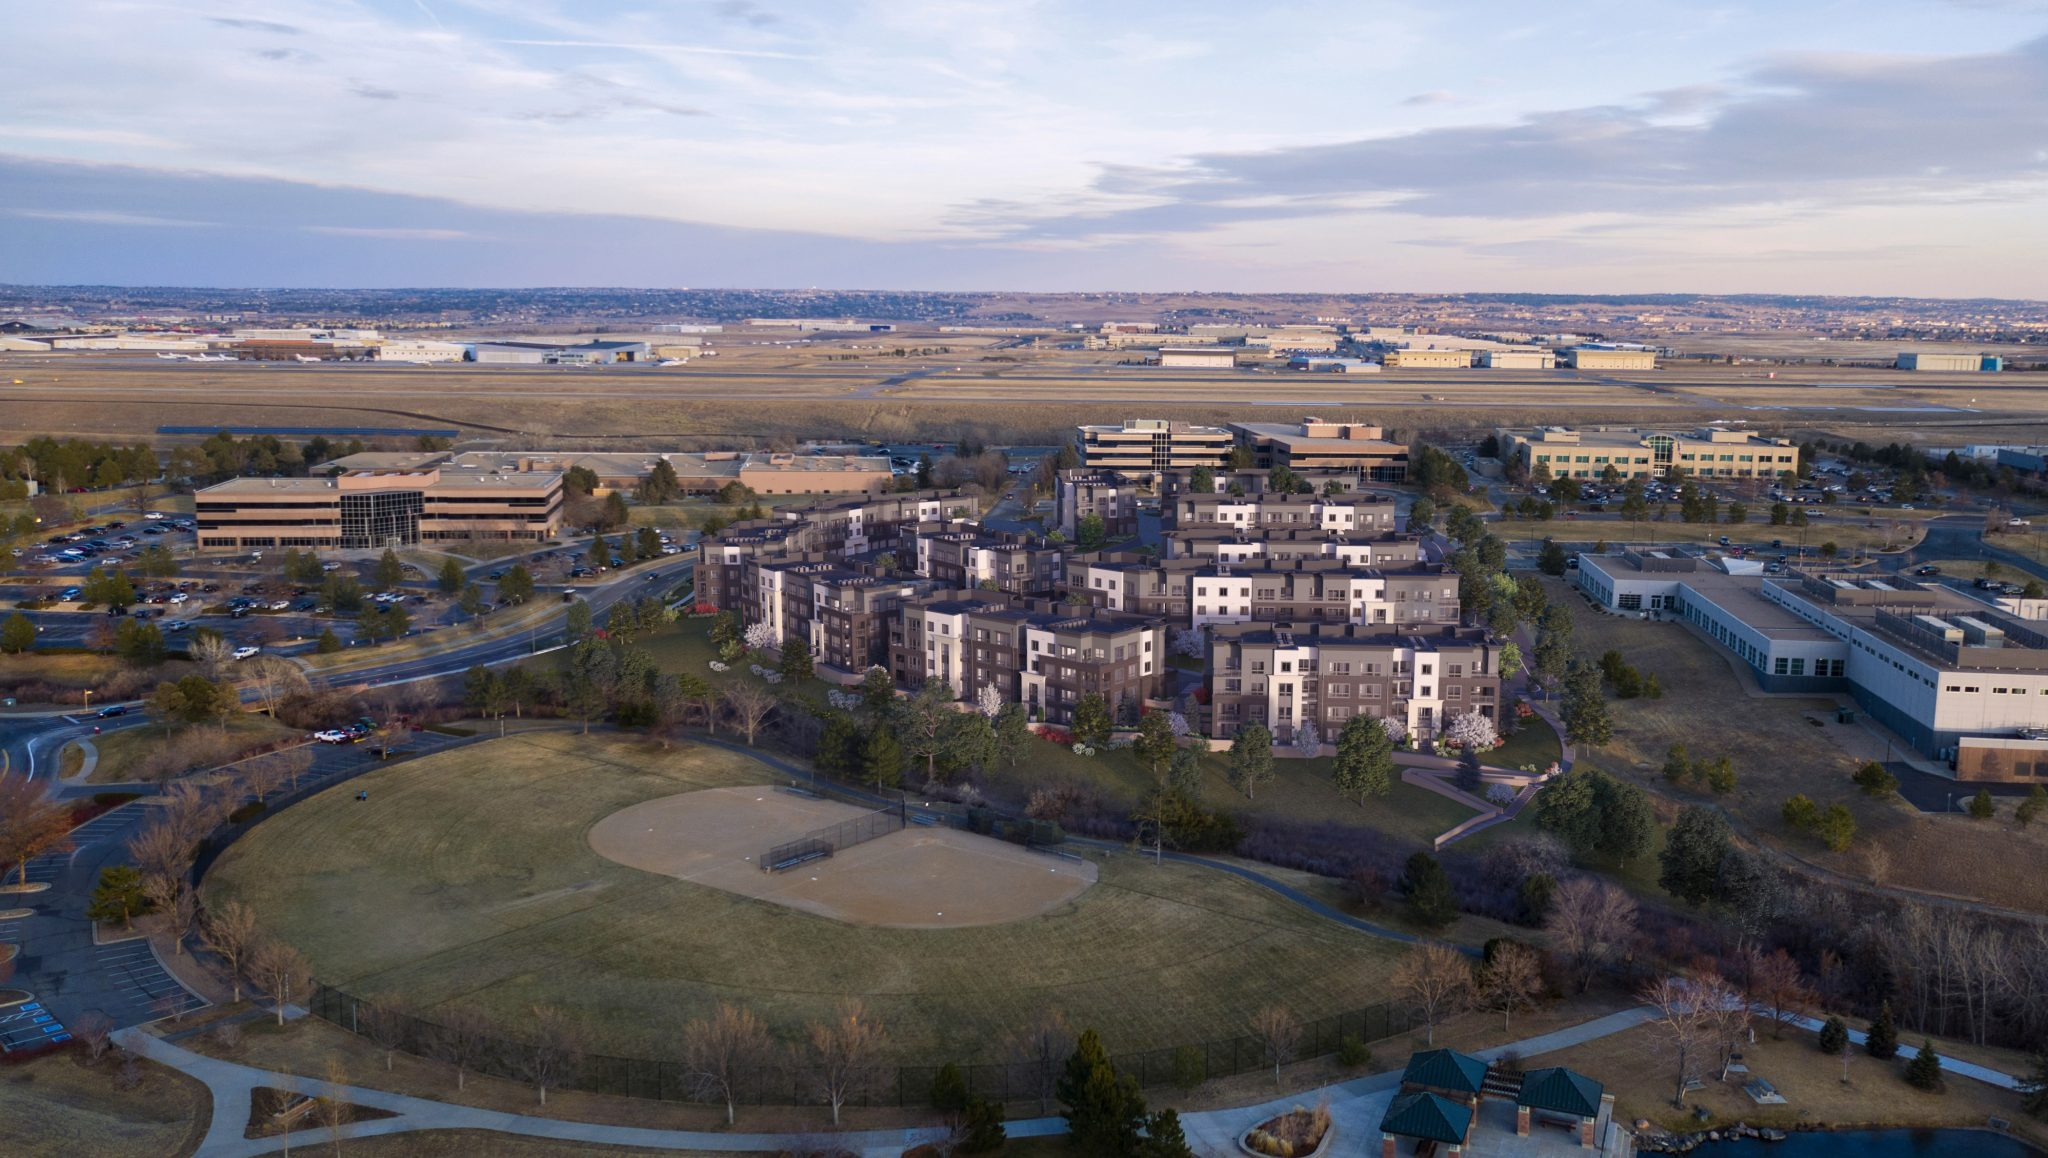 Aerial exterior of entire apartment complex with baseball fields in the foreground and horizon in background